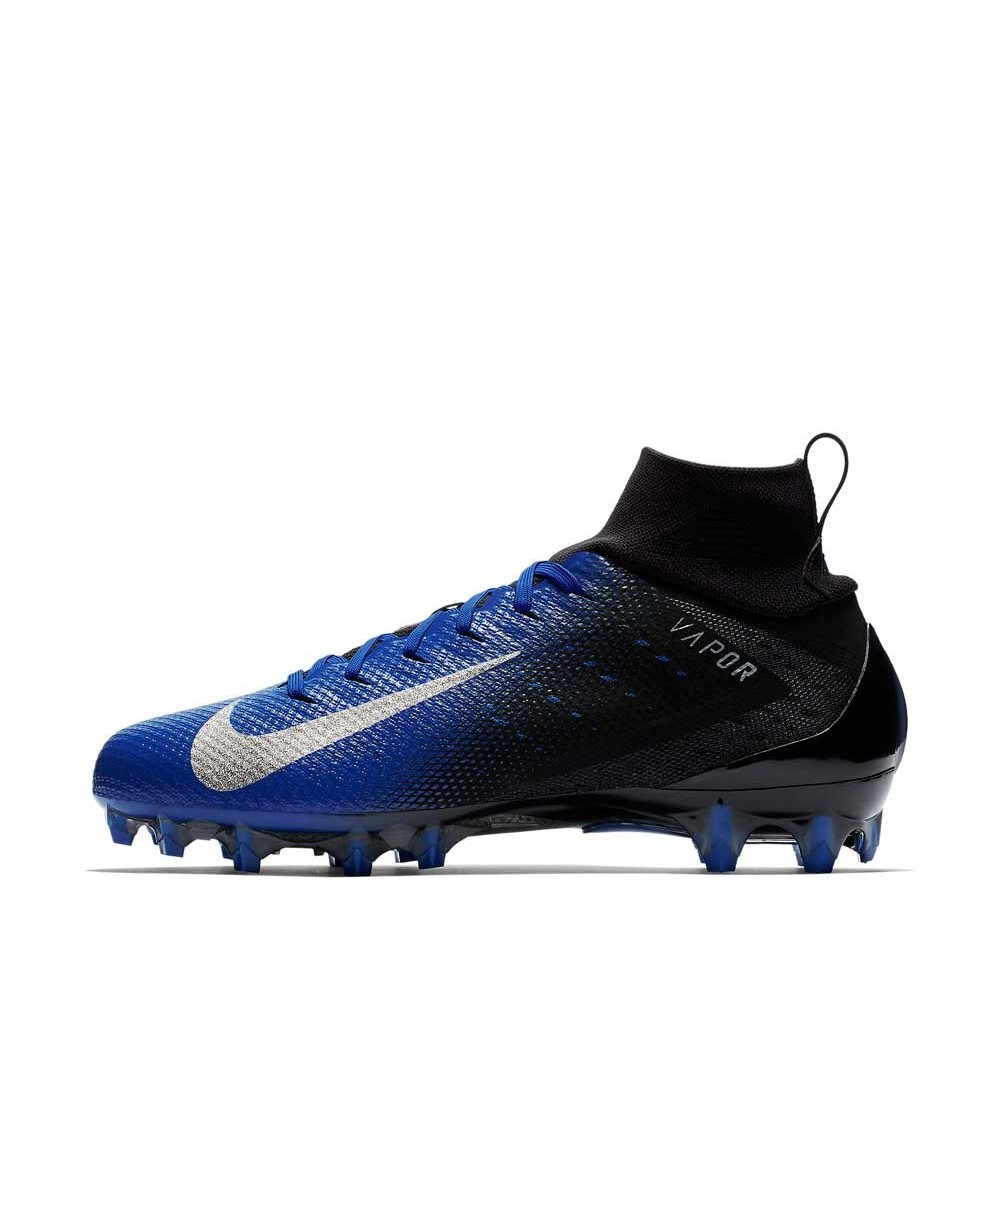 new product 50858 ccba7 Nike Vapor Untouchable 3 Pro Scarpe da Football Americano Uomo Game...